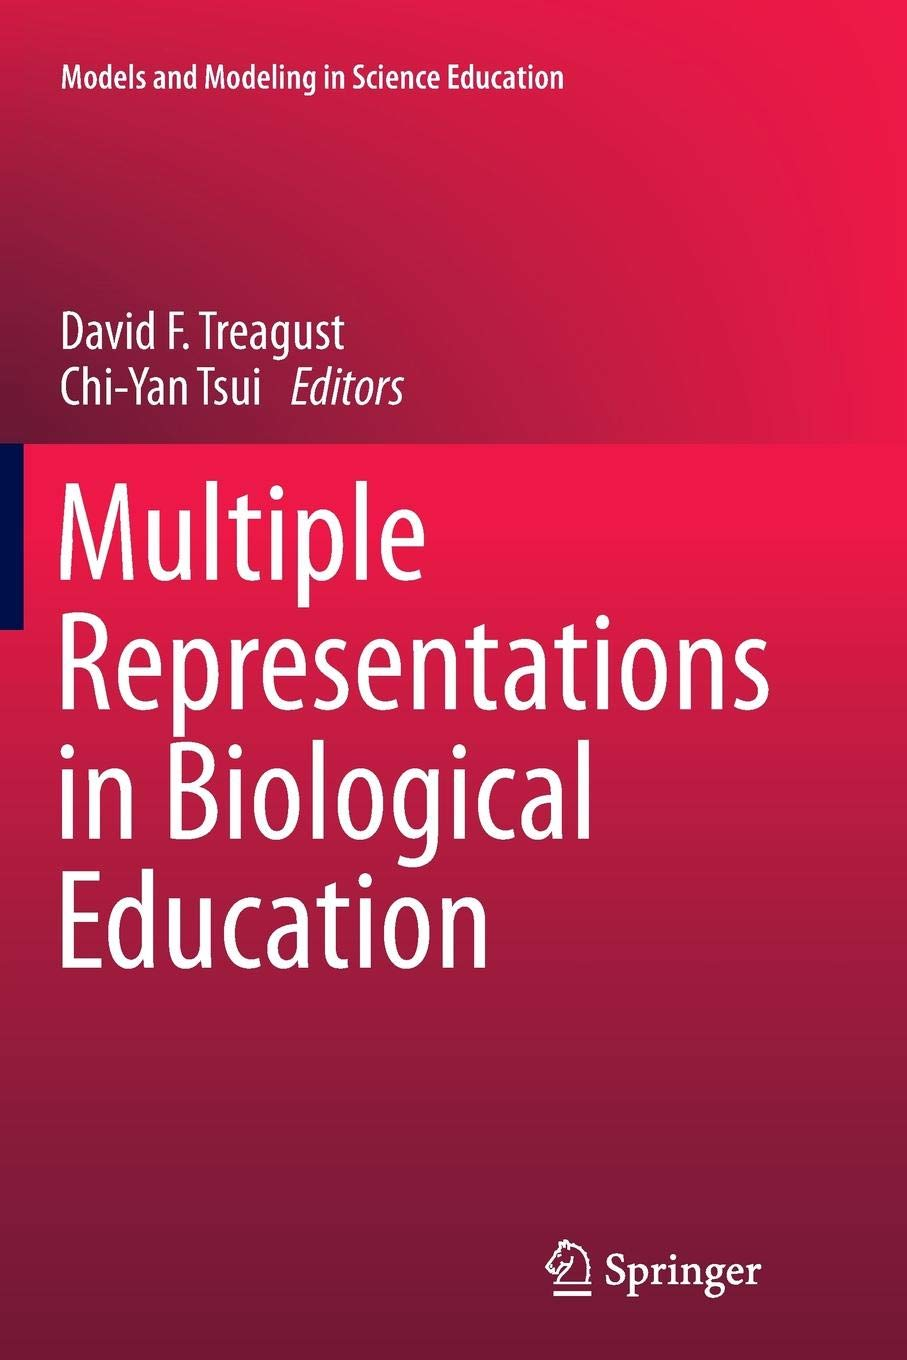 Multiple Representations in Biological Education (Models and Modeling in Science Education)